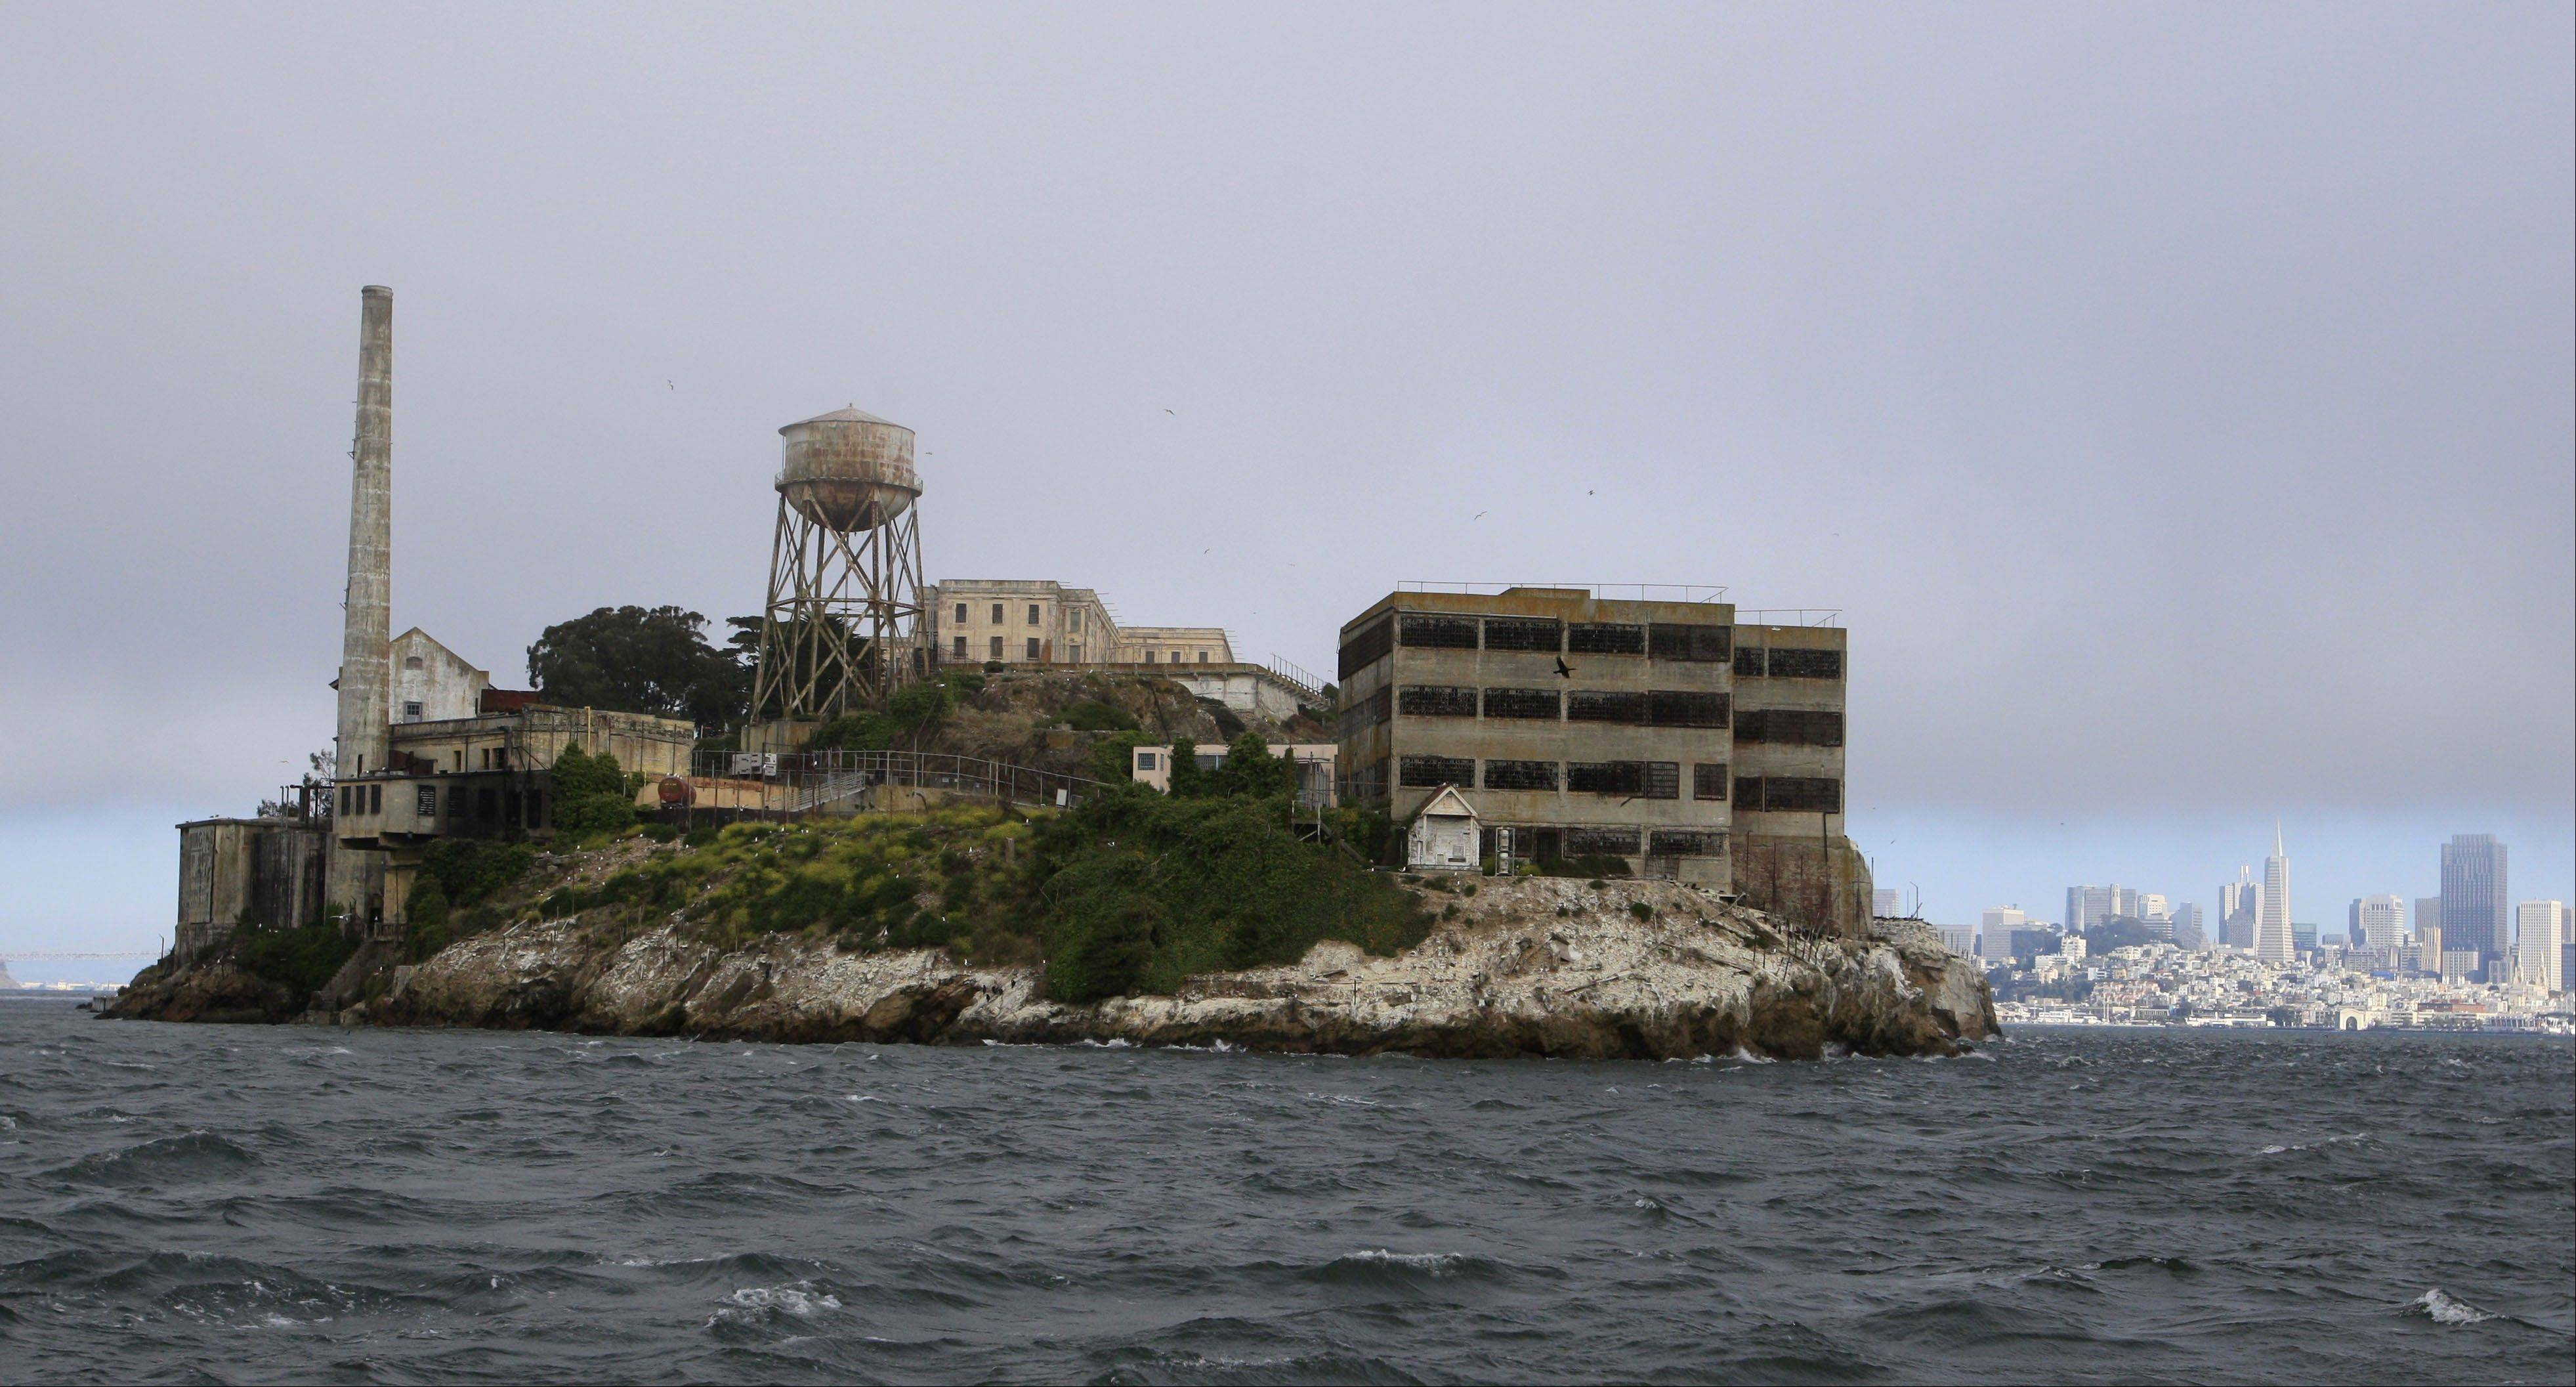 From a tour boat, visitors get a rare view of the west side of Alcatraz Island before taking the night tour of the former prison in San Francisco.